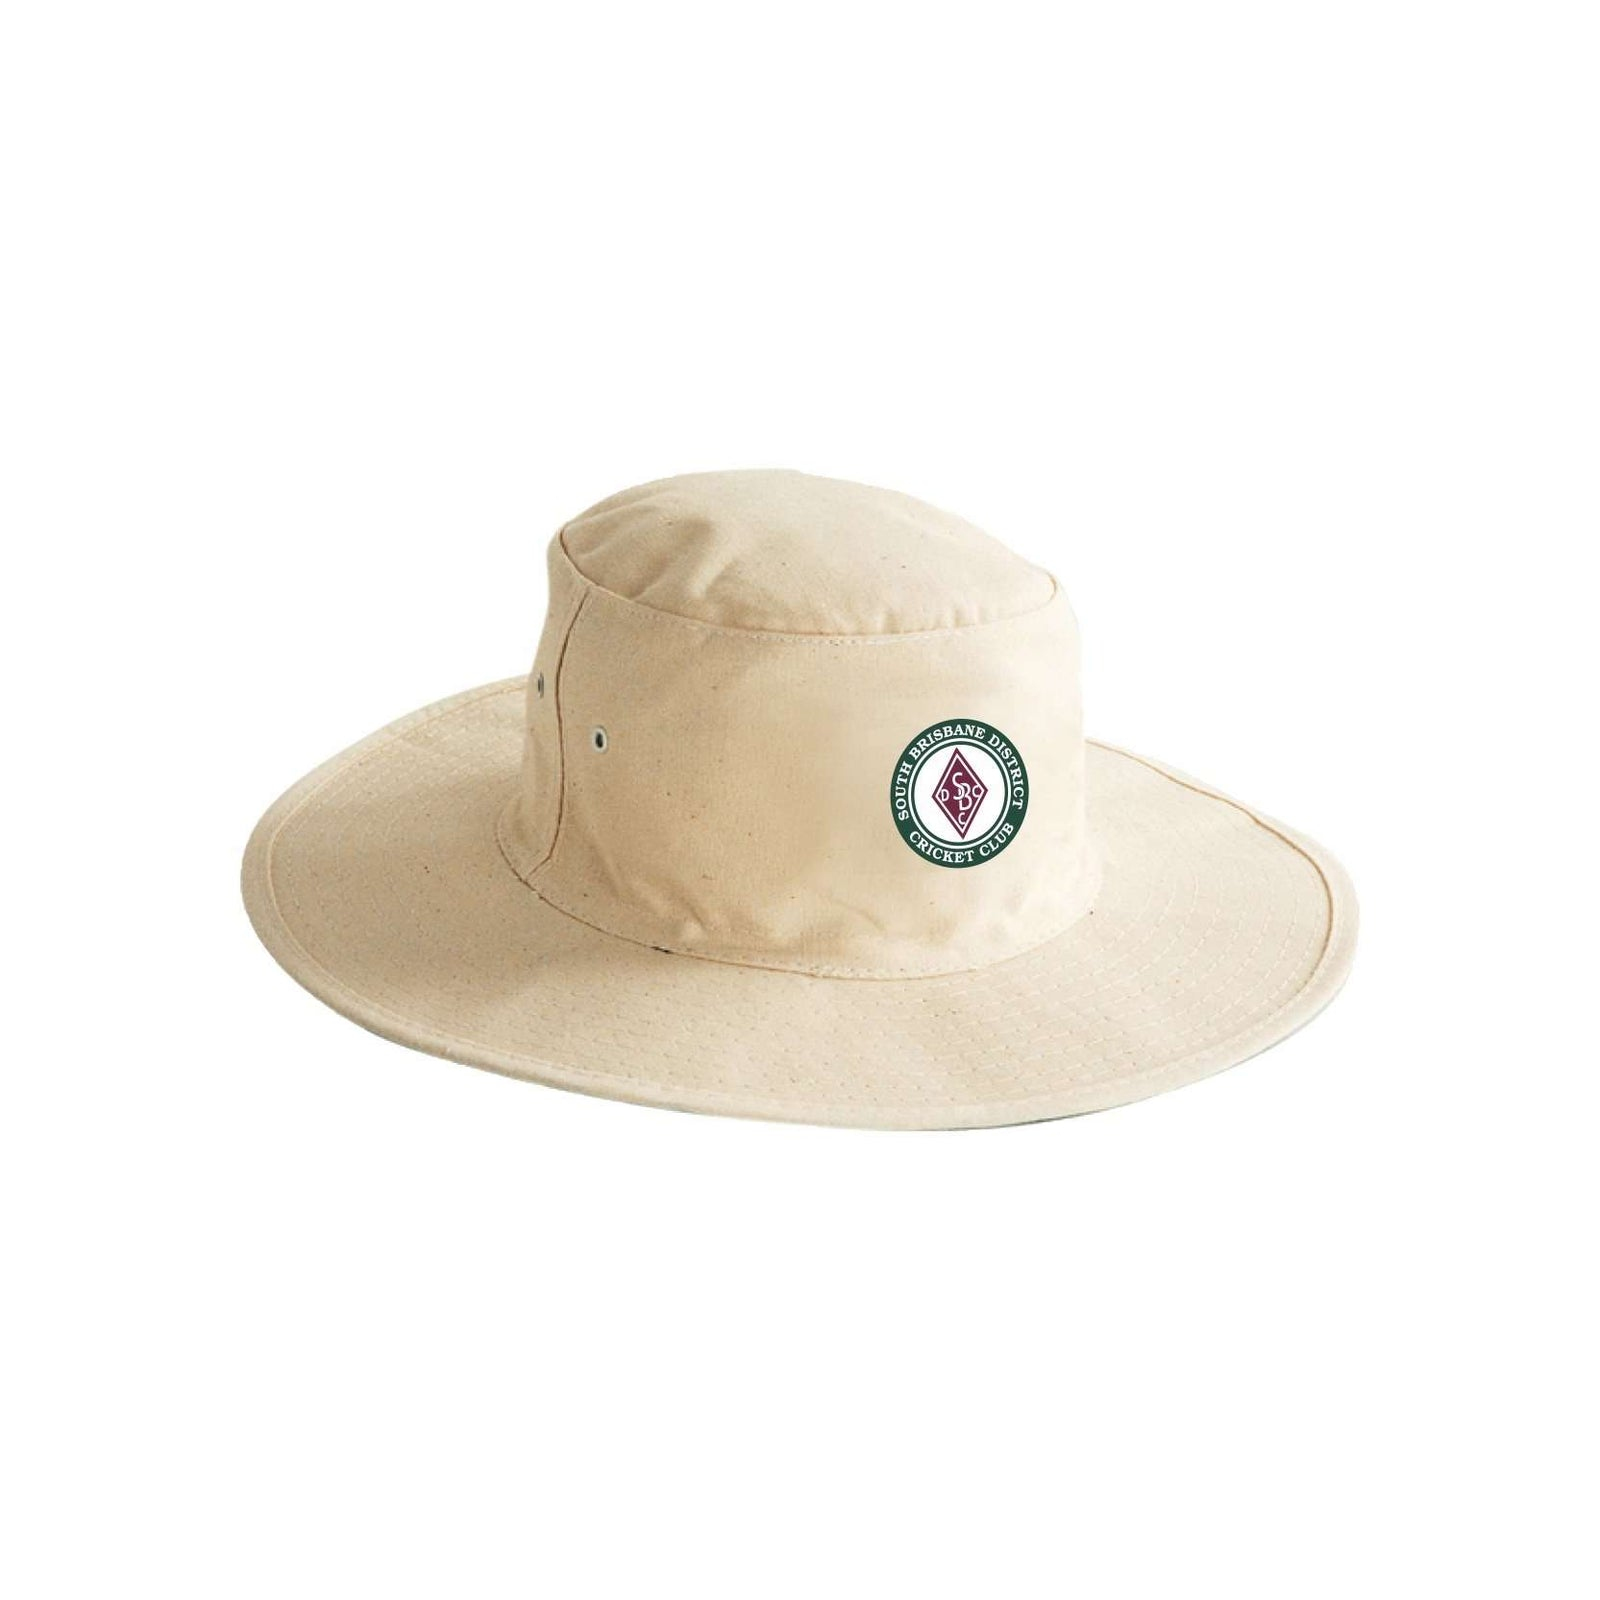 EMU Sportswear:South Brisbane Cricket Club - Wide Brim Hat